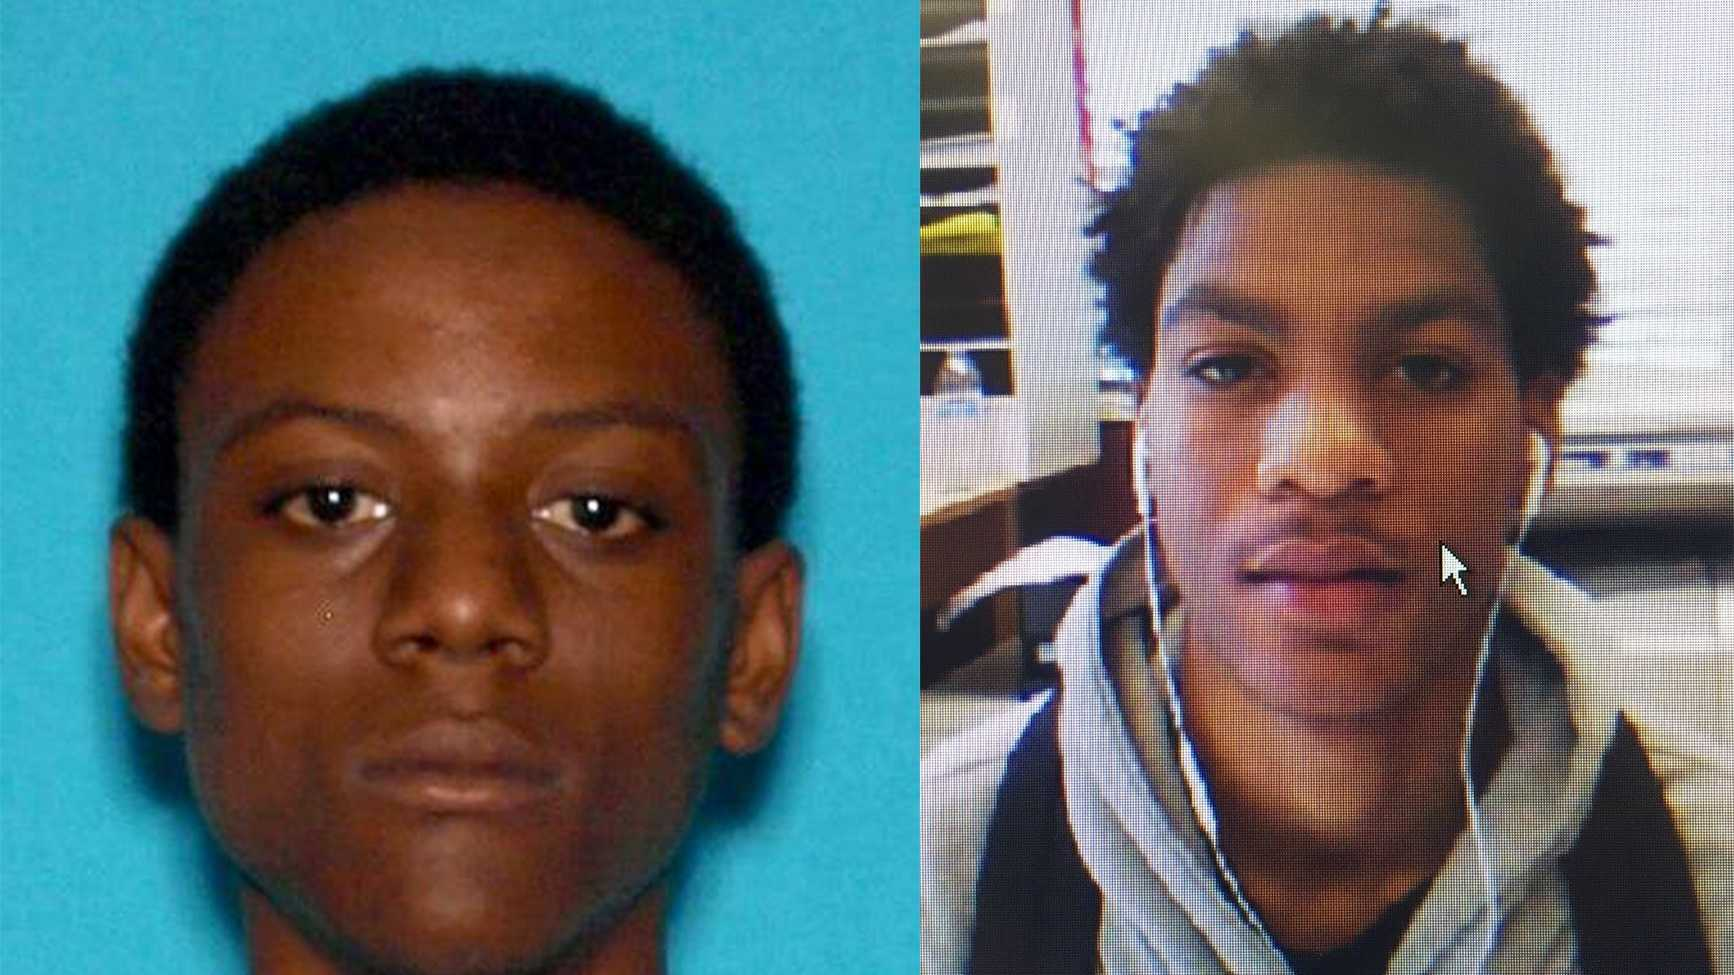 Jakari Taylor, 20, of Sacramento, and Jakobi Brumfield, 18, of Fairfield were arrested Monday. (September 12, 2016)